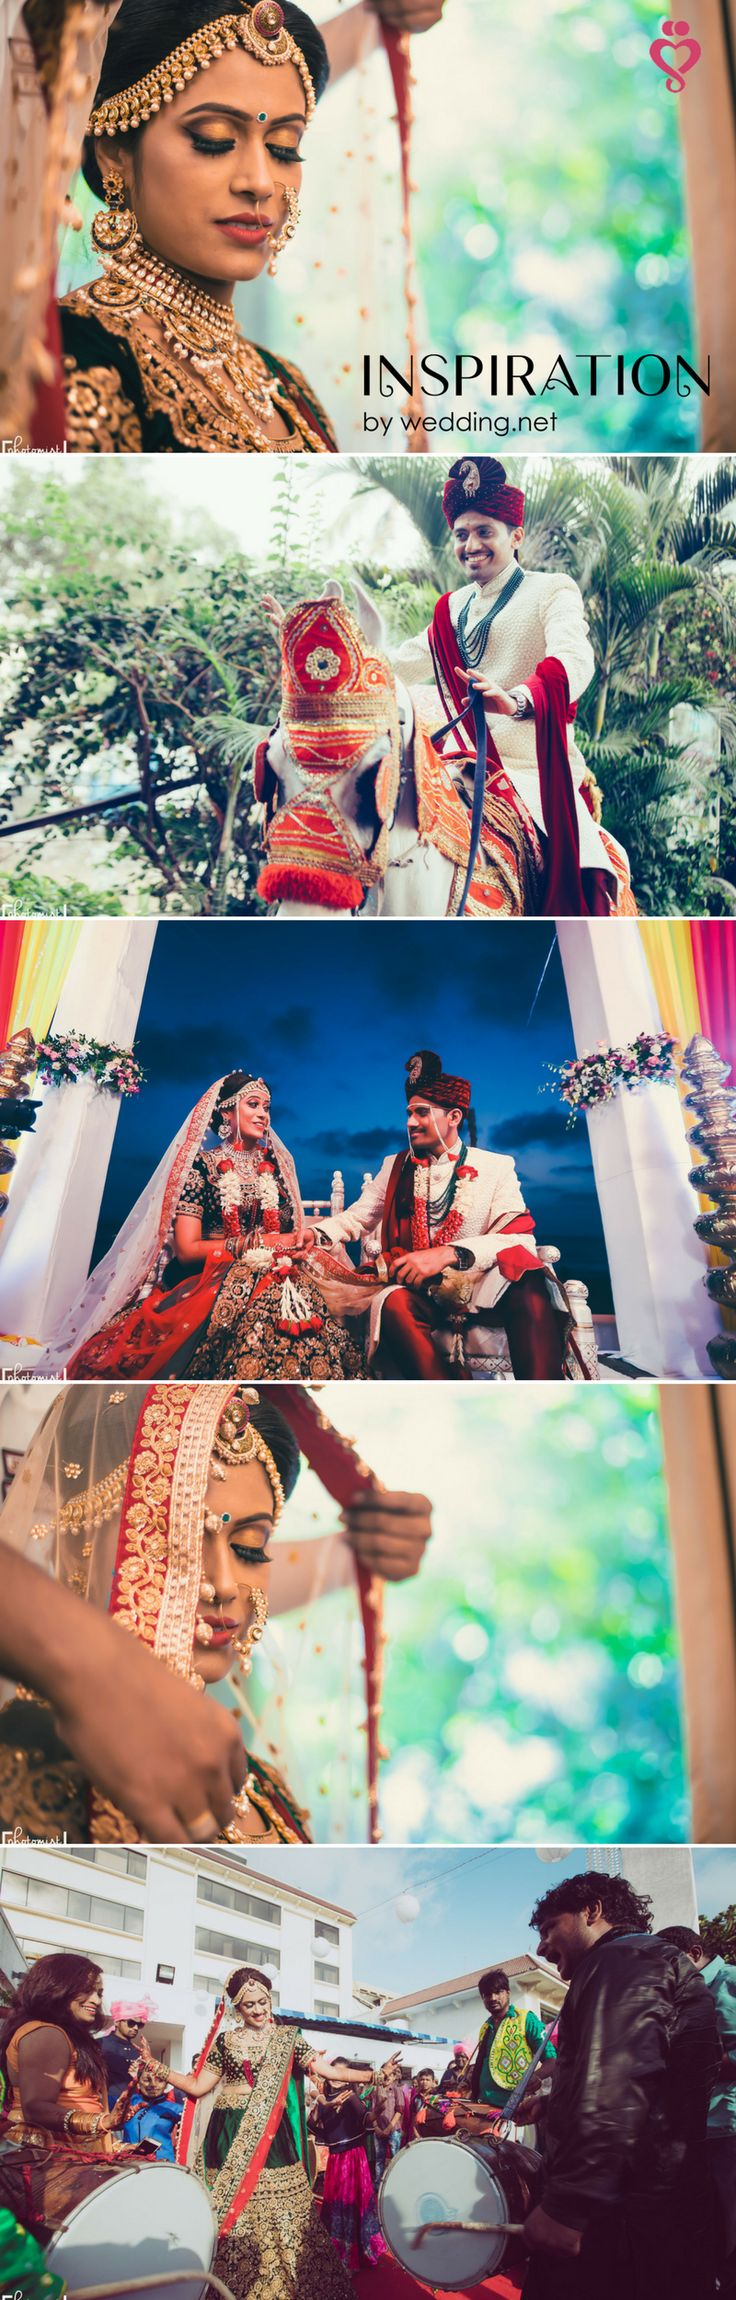 A NEW ARTICLE ON OUR BLOG! Love Story Shot - Brides in a Red and Gold Sequinned Lehenga and Grooms in a Black and Red Suit. Best Locations WeddingNet #weddingnet #indianwedding #lovestory #photoshoot #inspiration #couple #love #destination #location #lovely #places